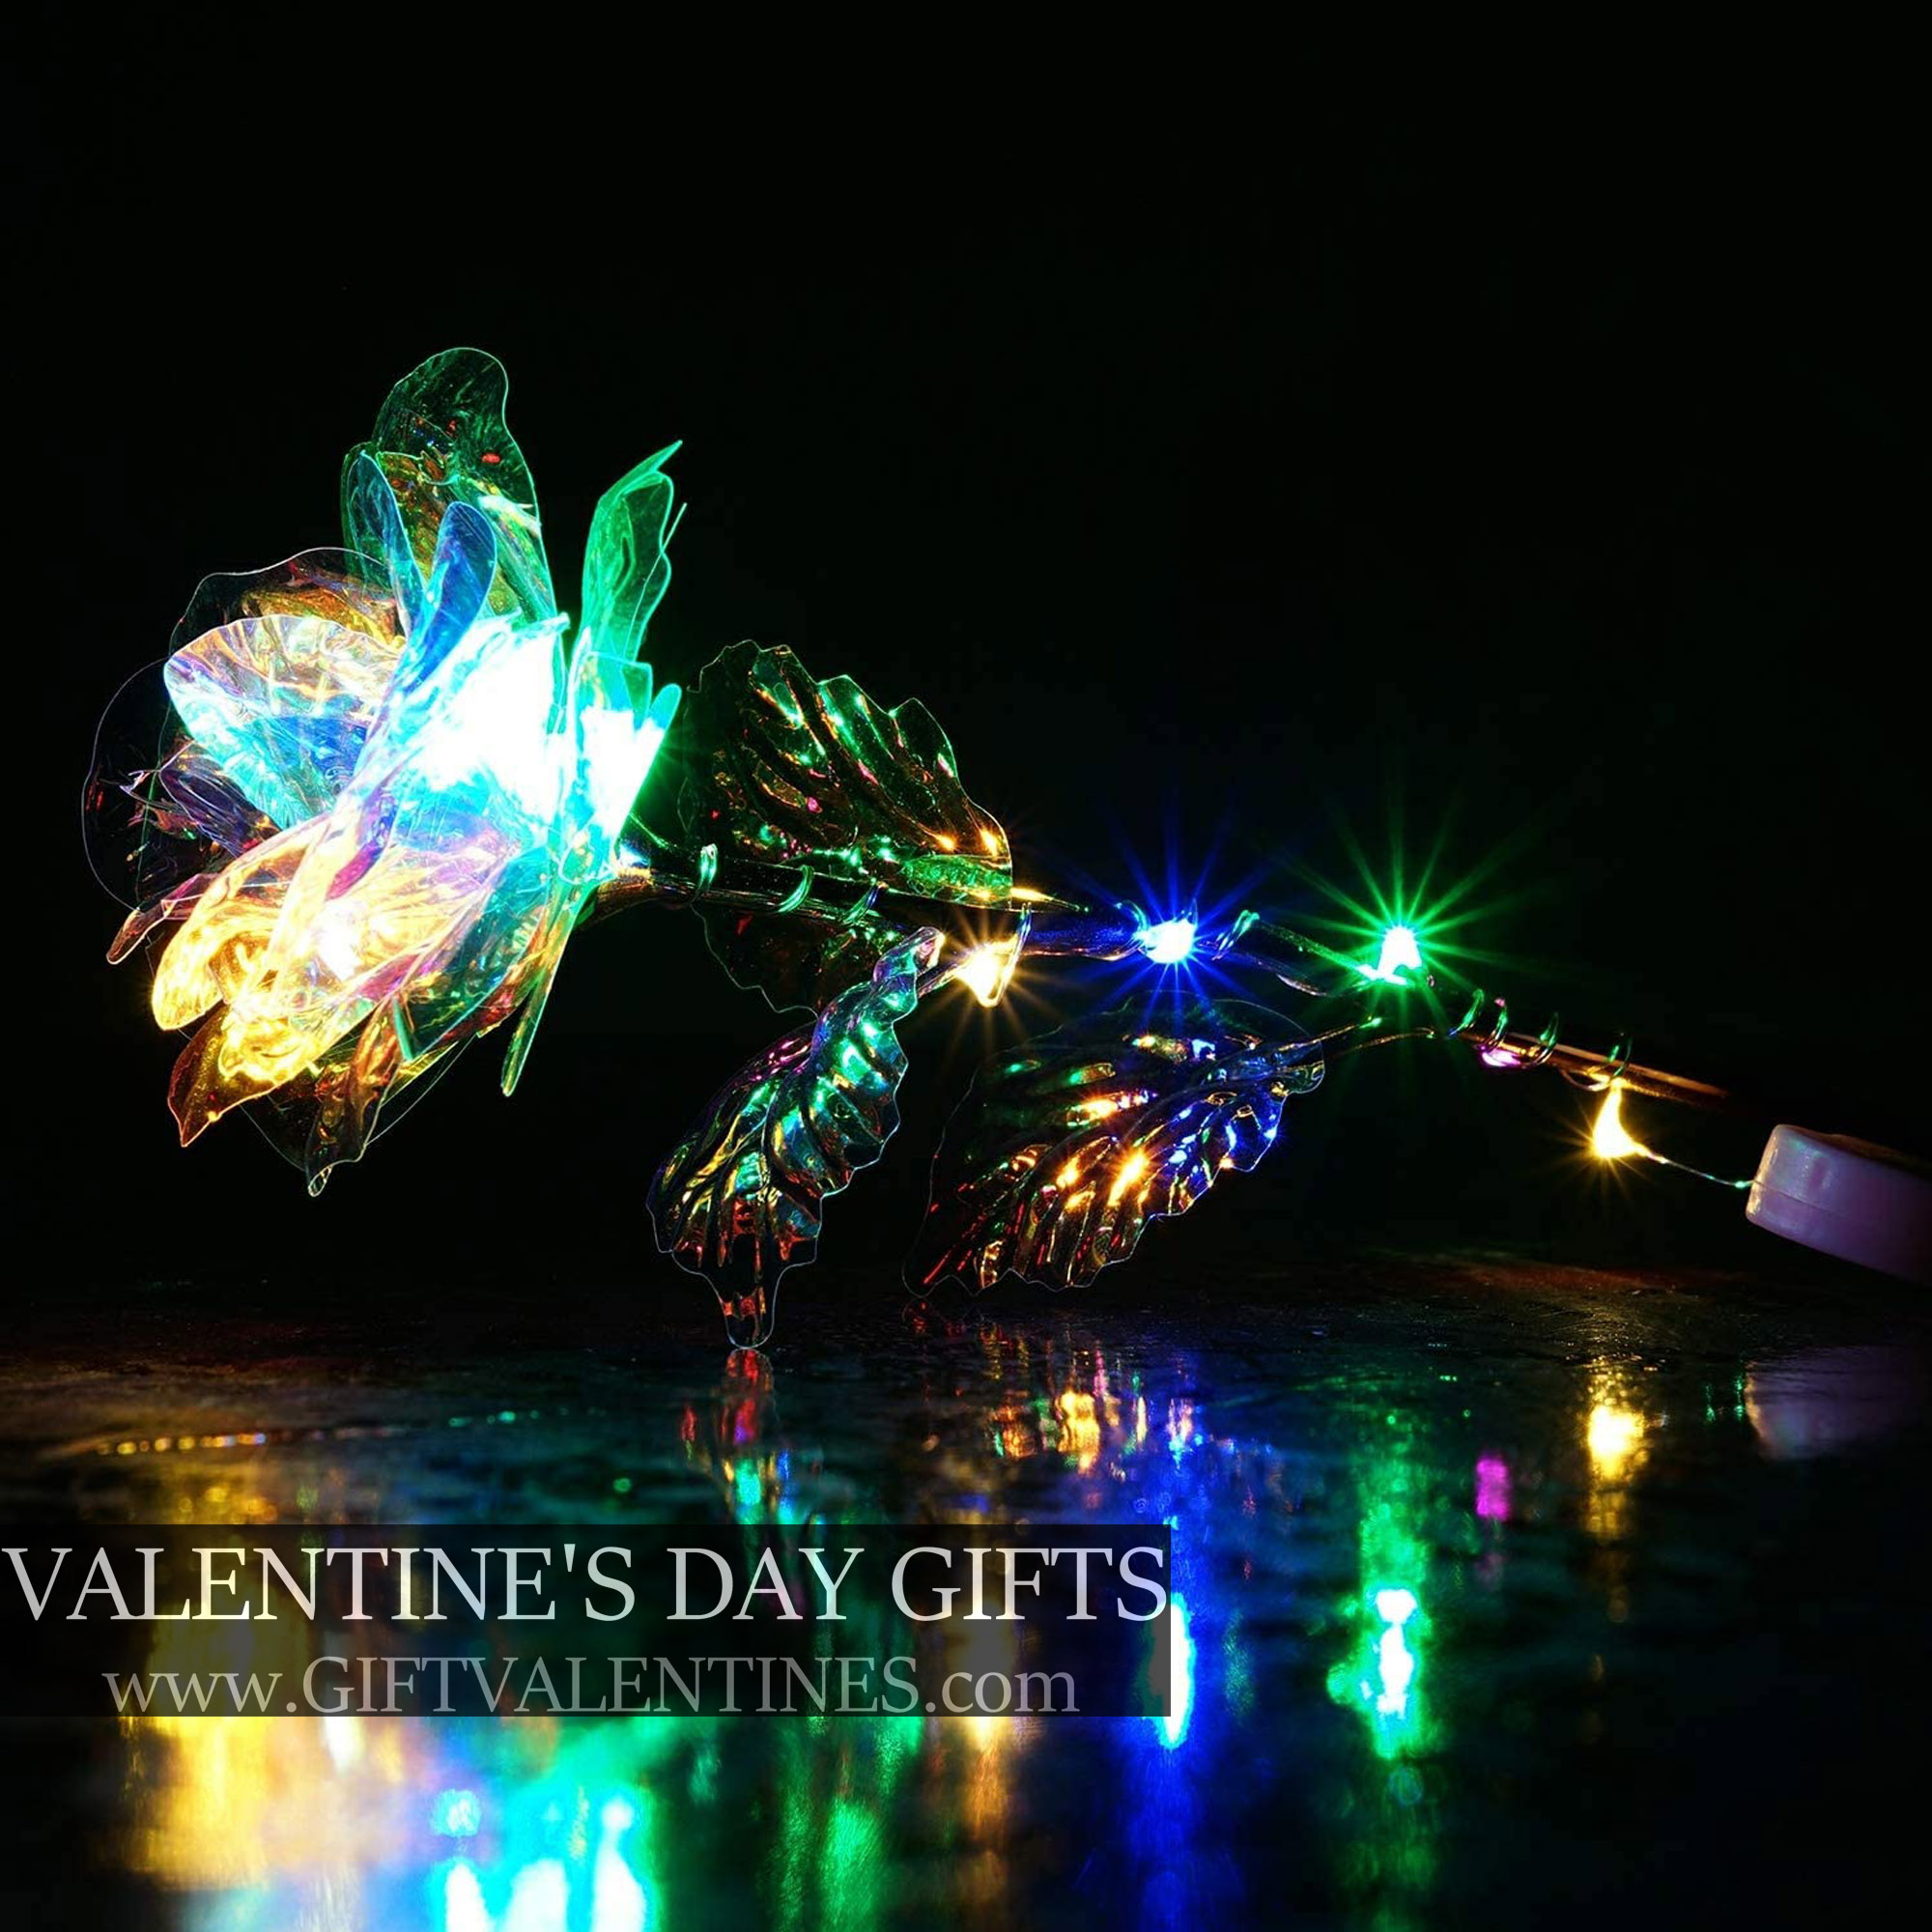 24K Forever Galaxy Rose With Gift Box and LED Lights